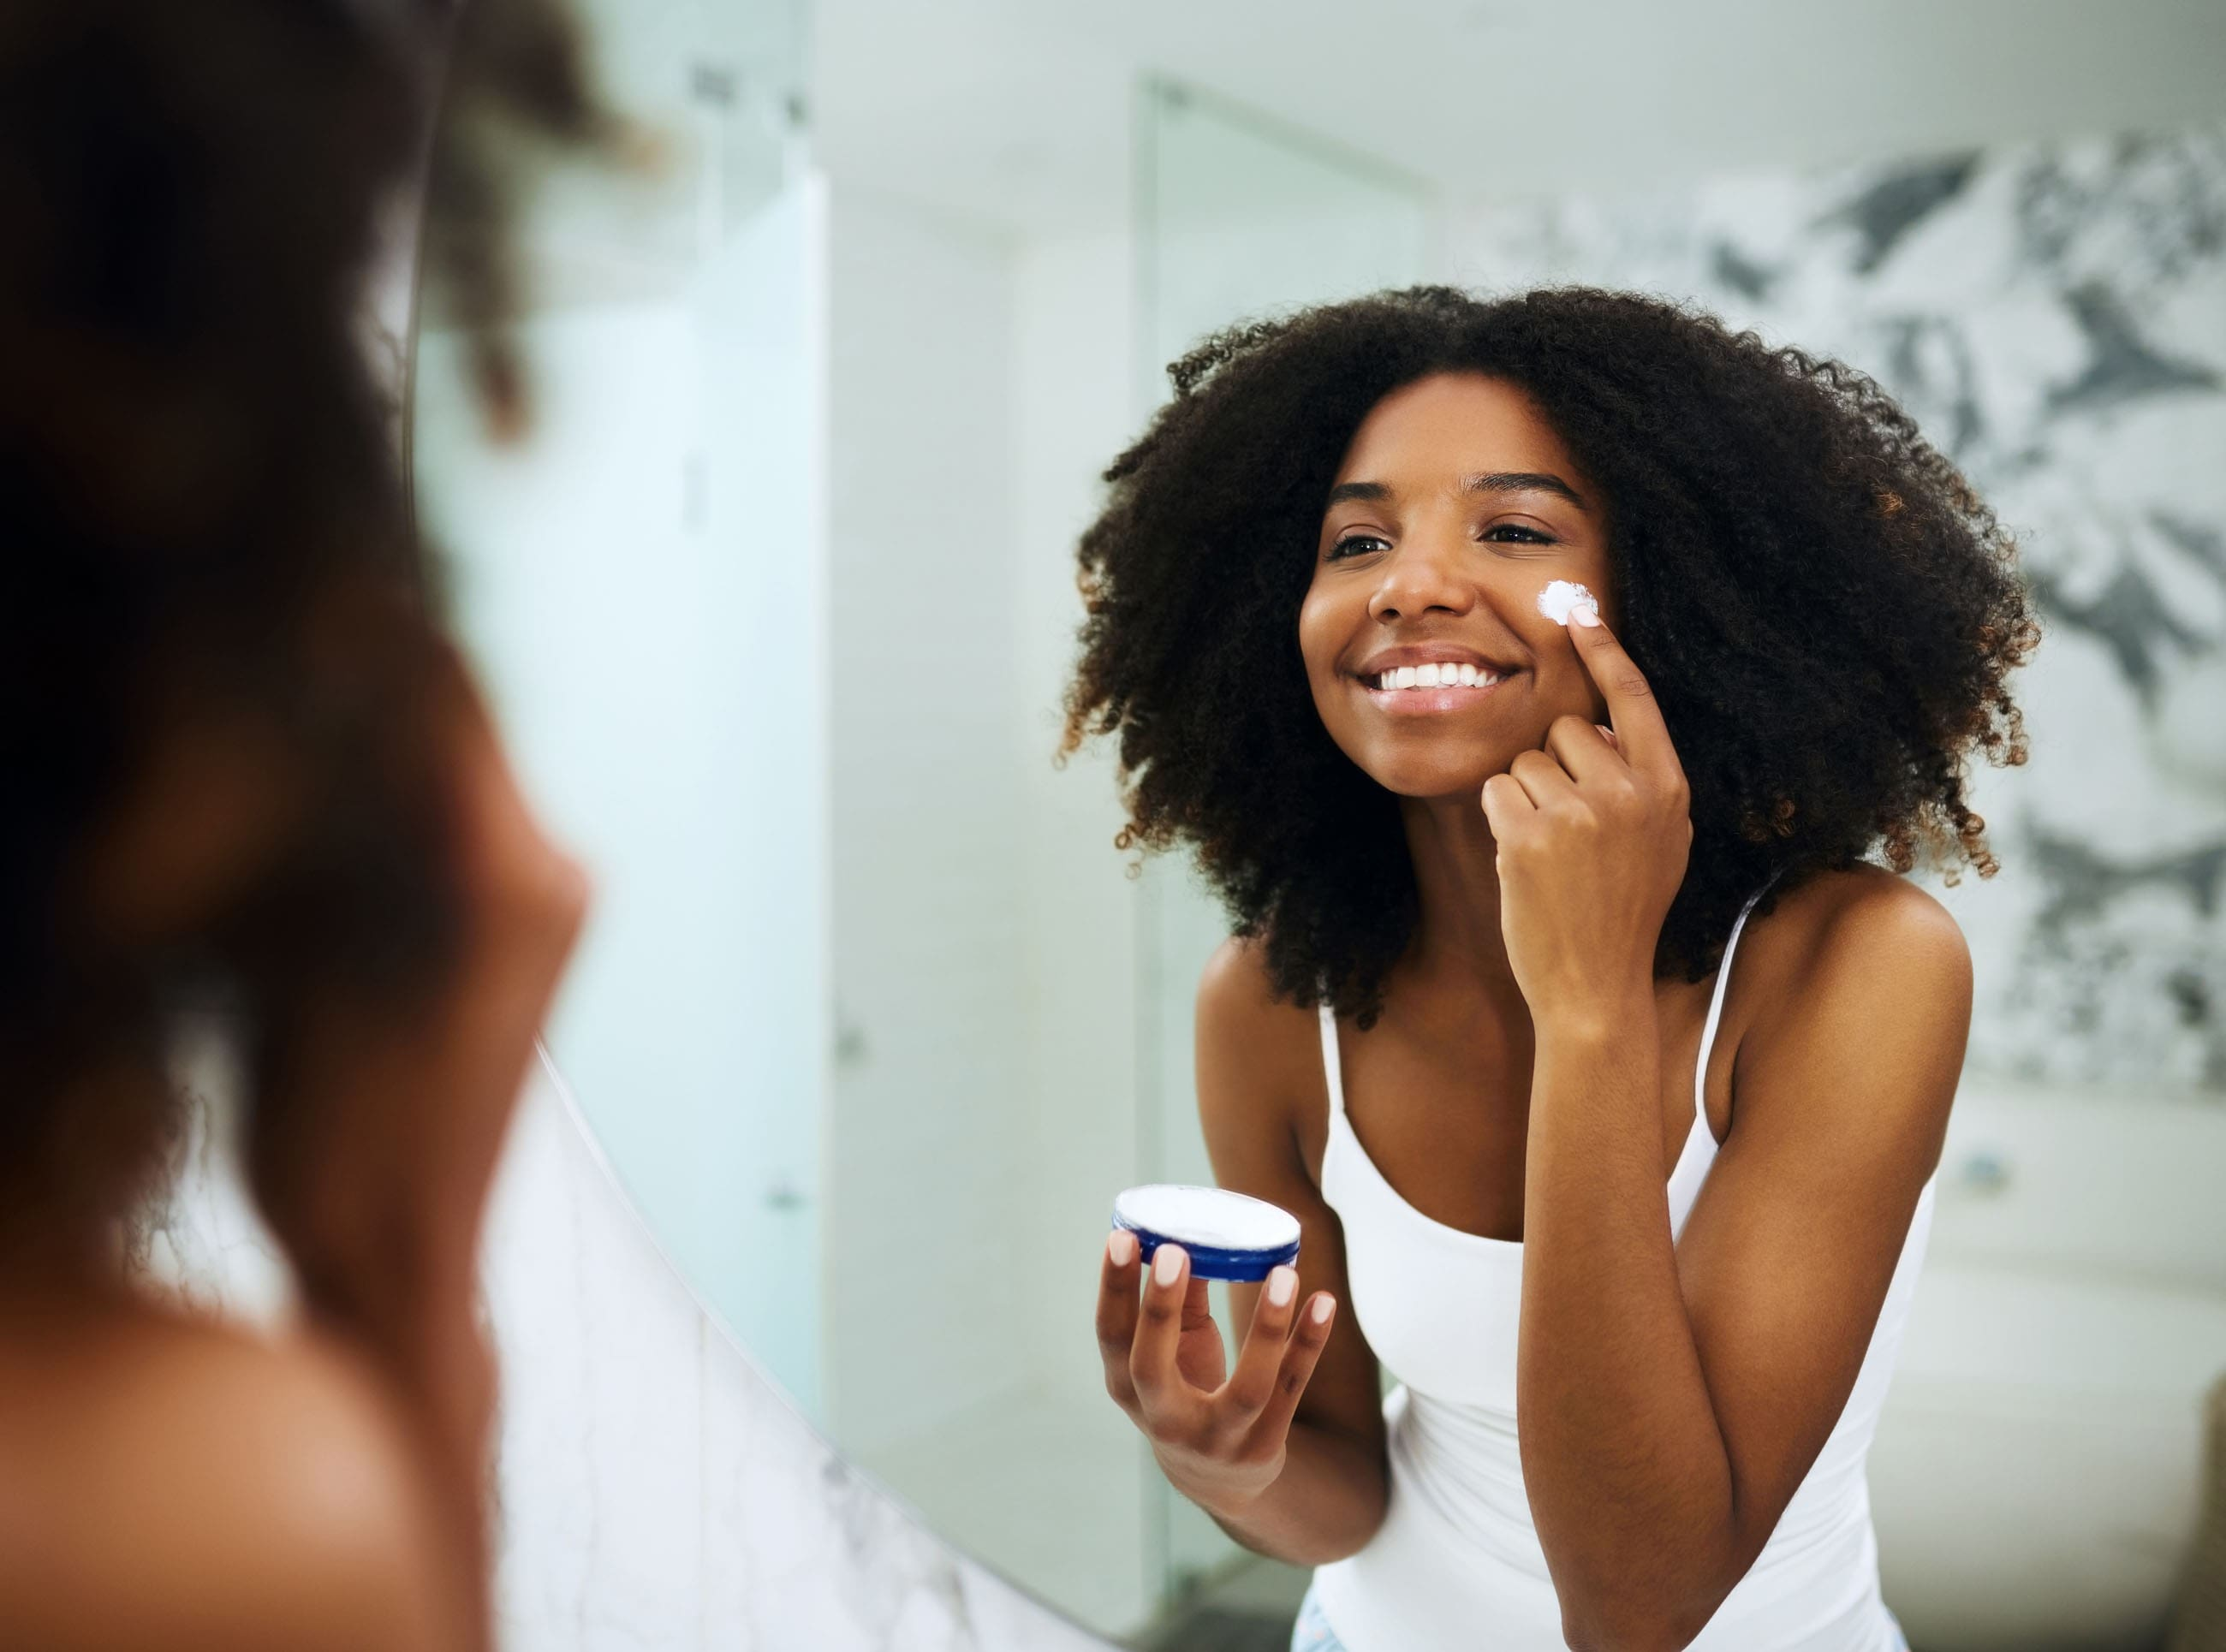 woman standing in front of a mirror, holding a small pot of cream and applying sun protection.